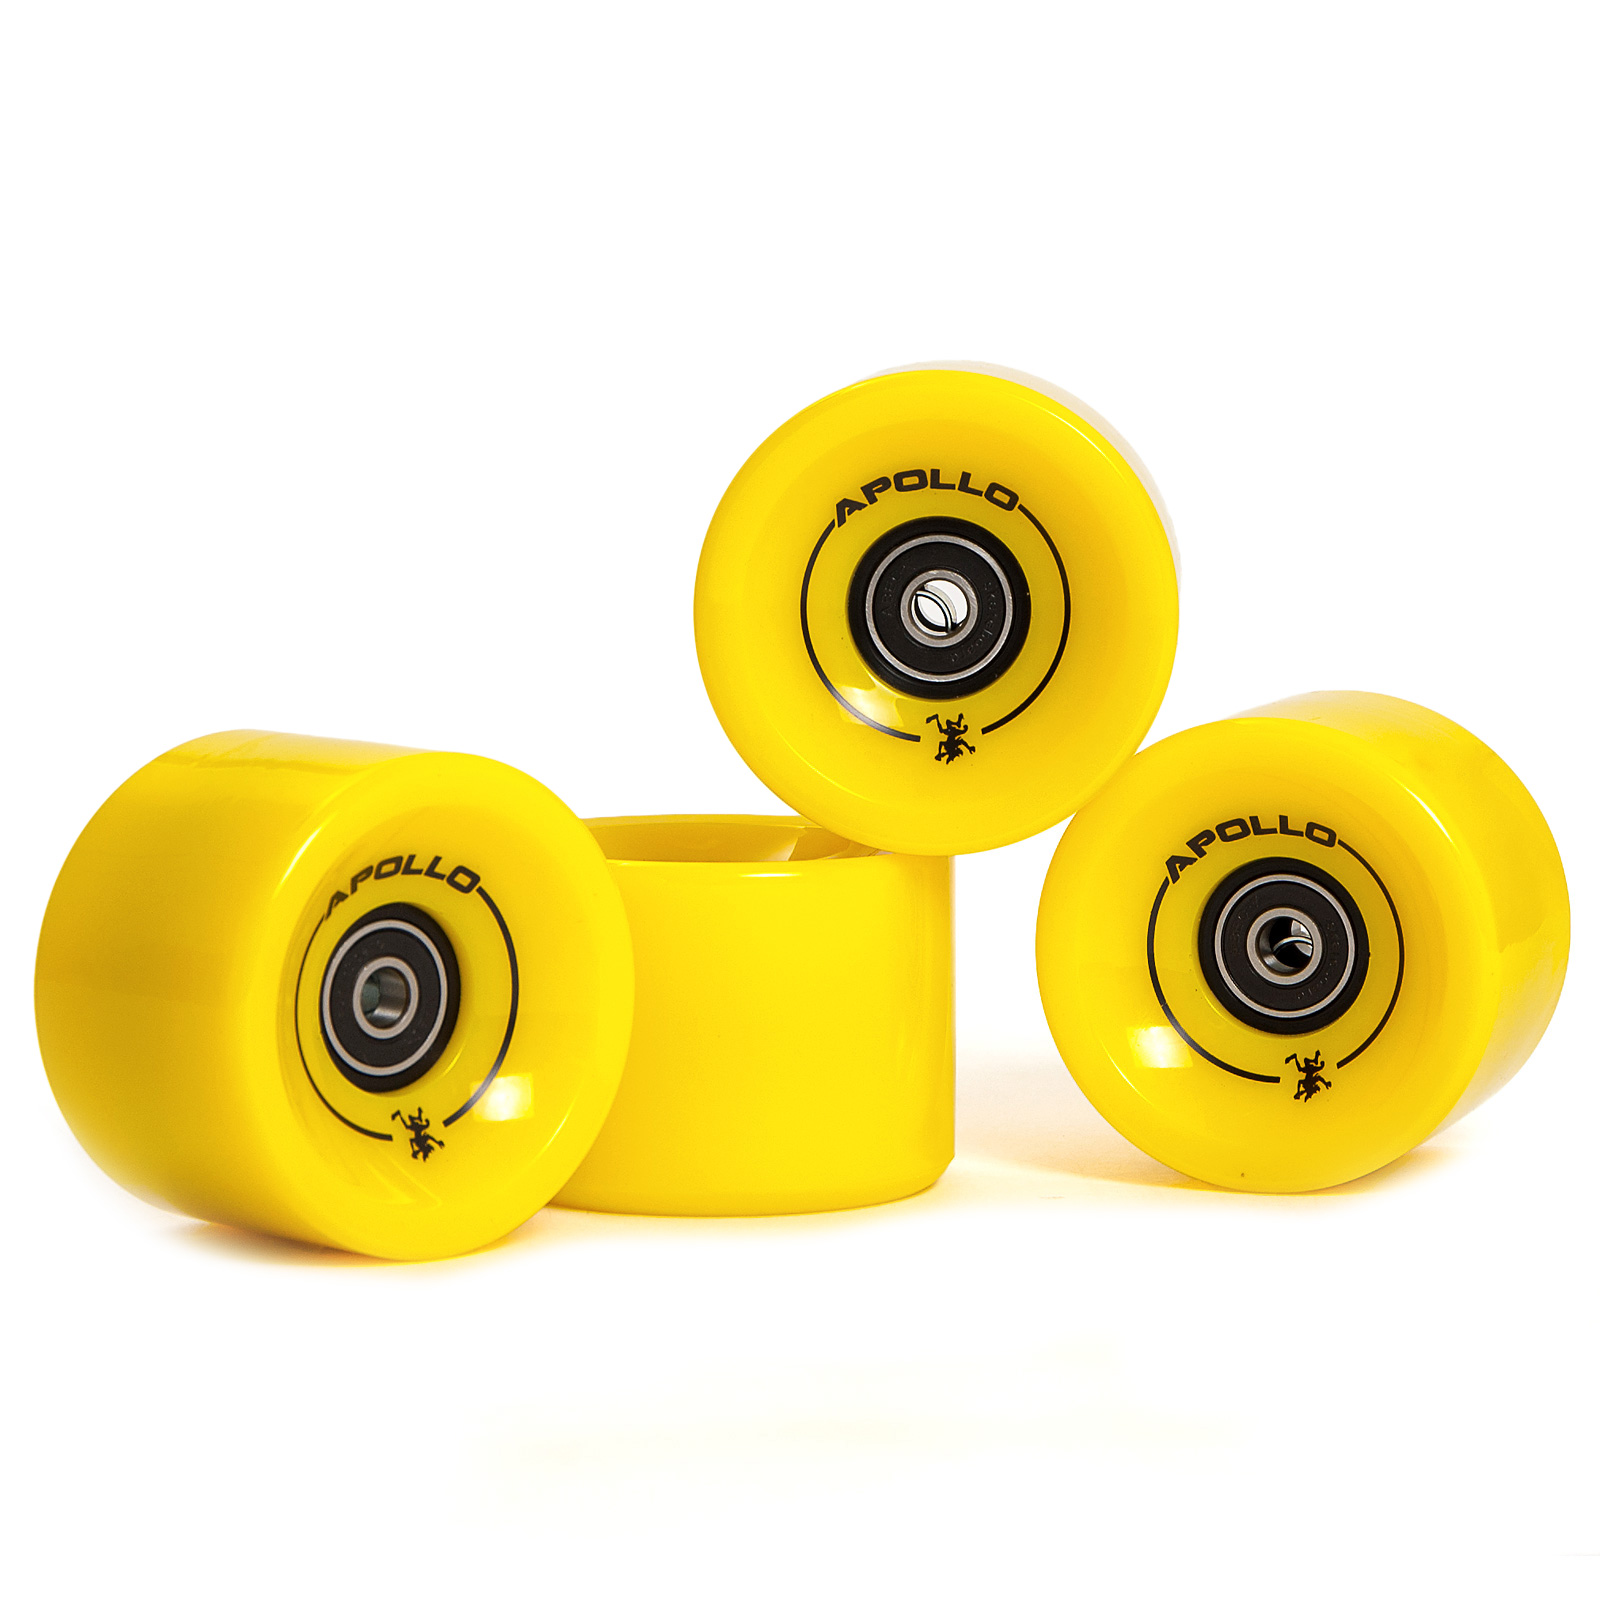 Apollo Longboard Rollen Wheel Set - Solid Yellow / gelb - Ersatzrollen